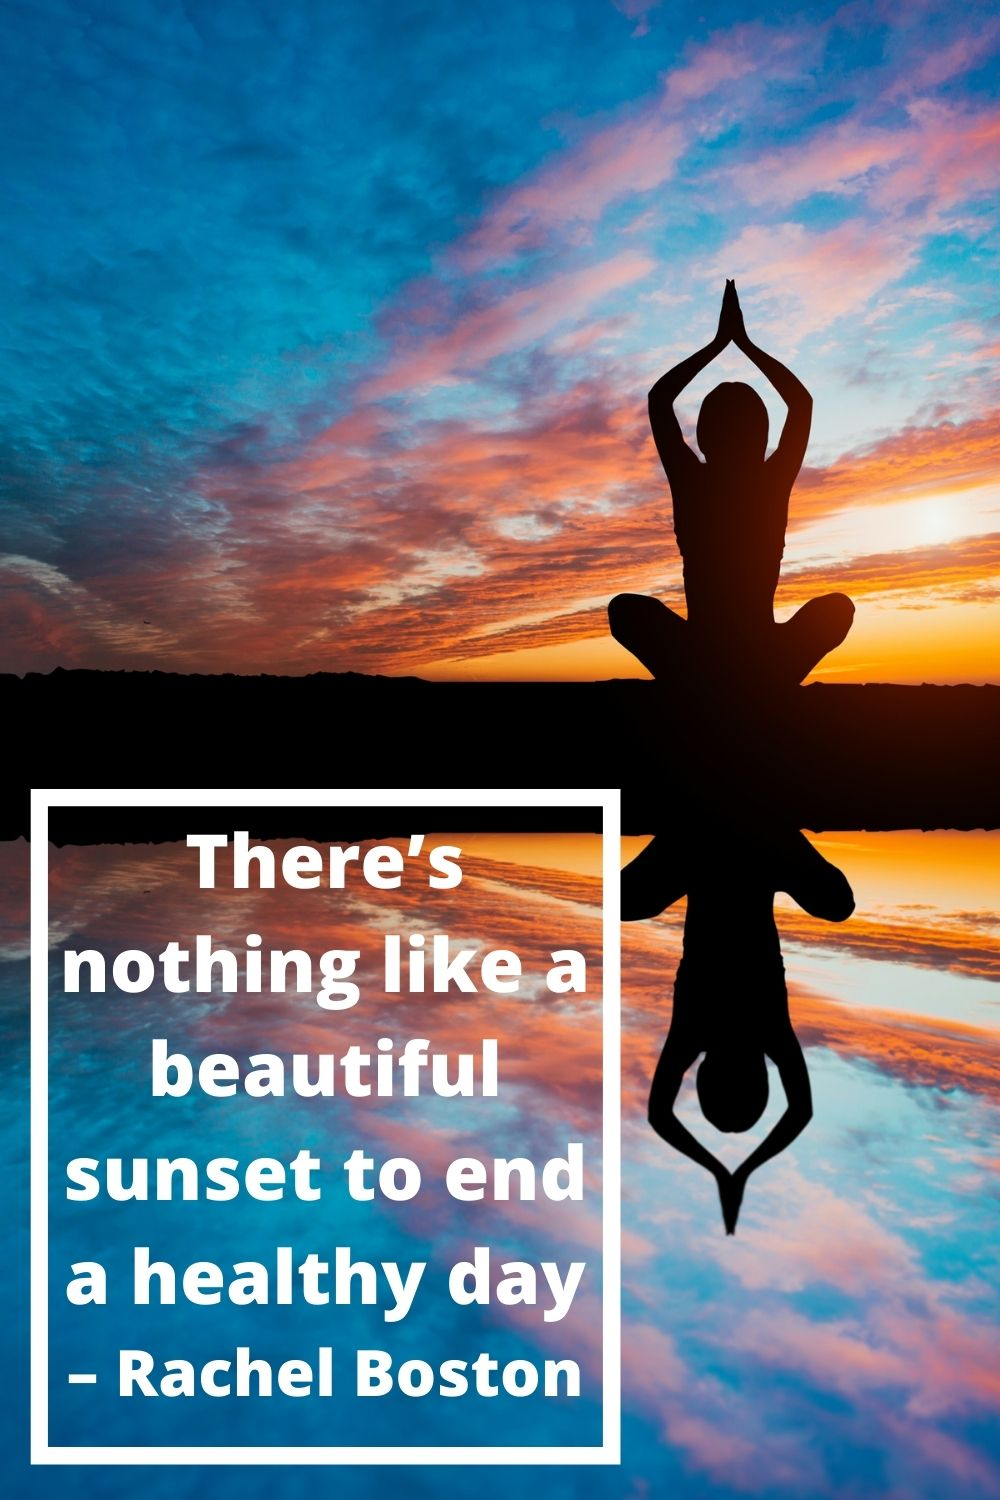 There's nothing like a beautiful sunset to end a healthy day. – Rachel Boston